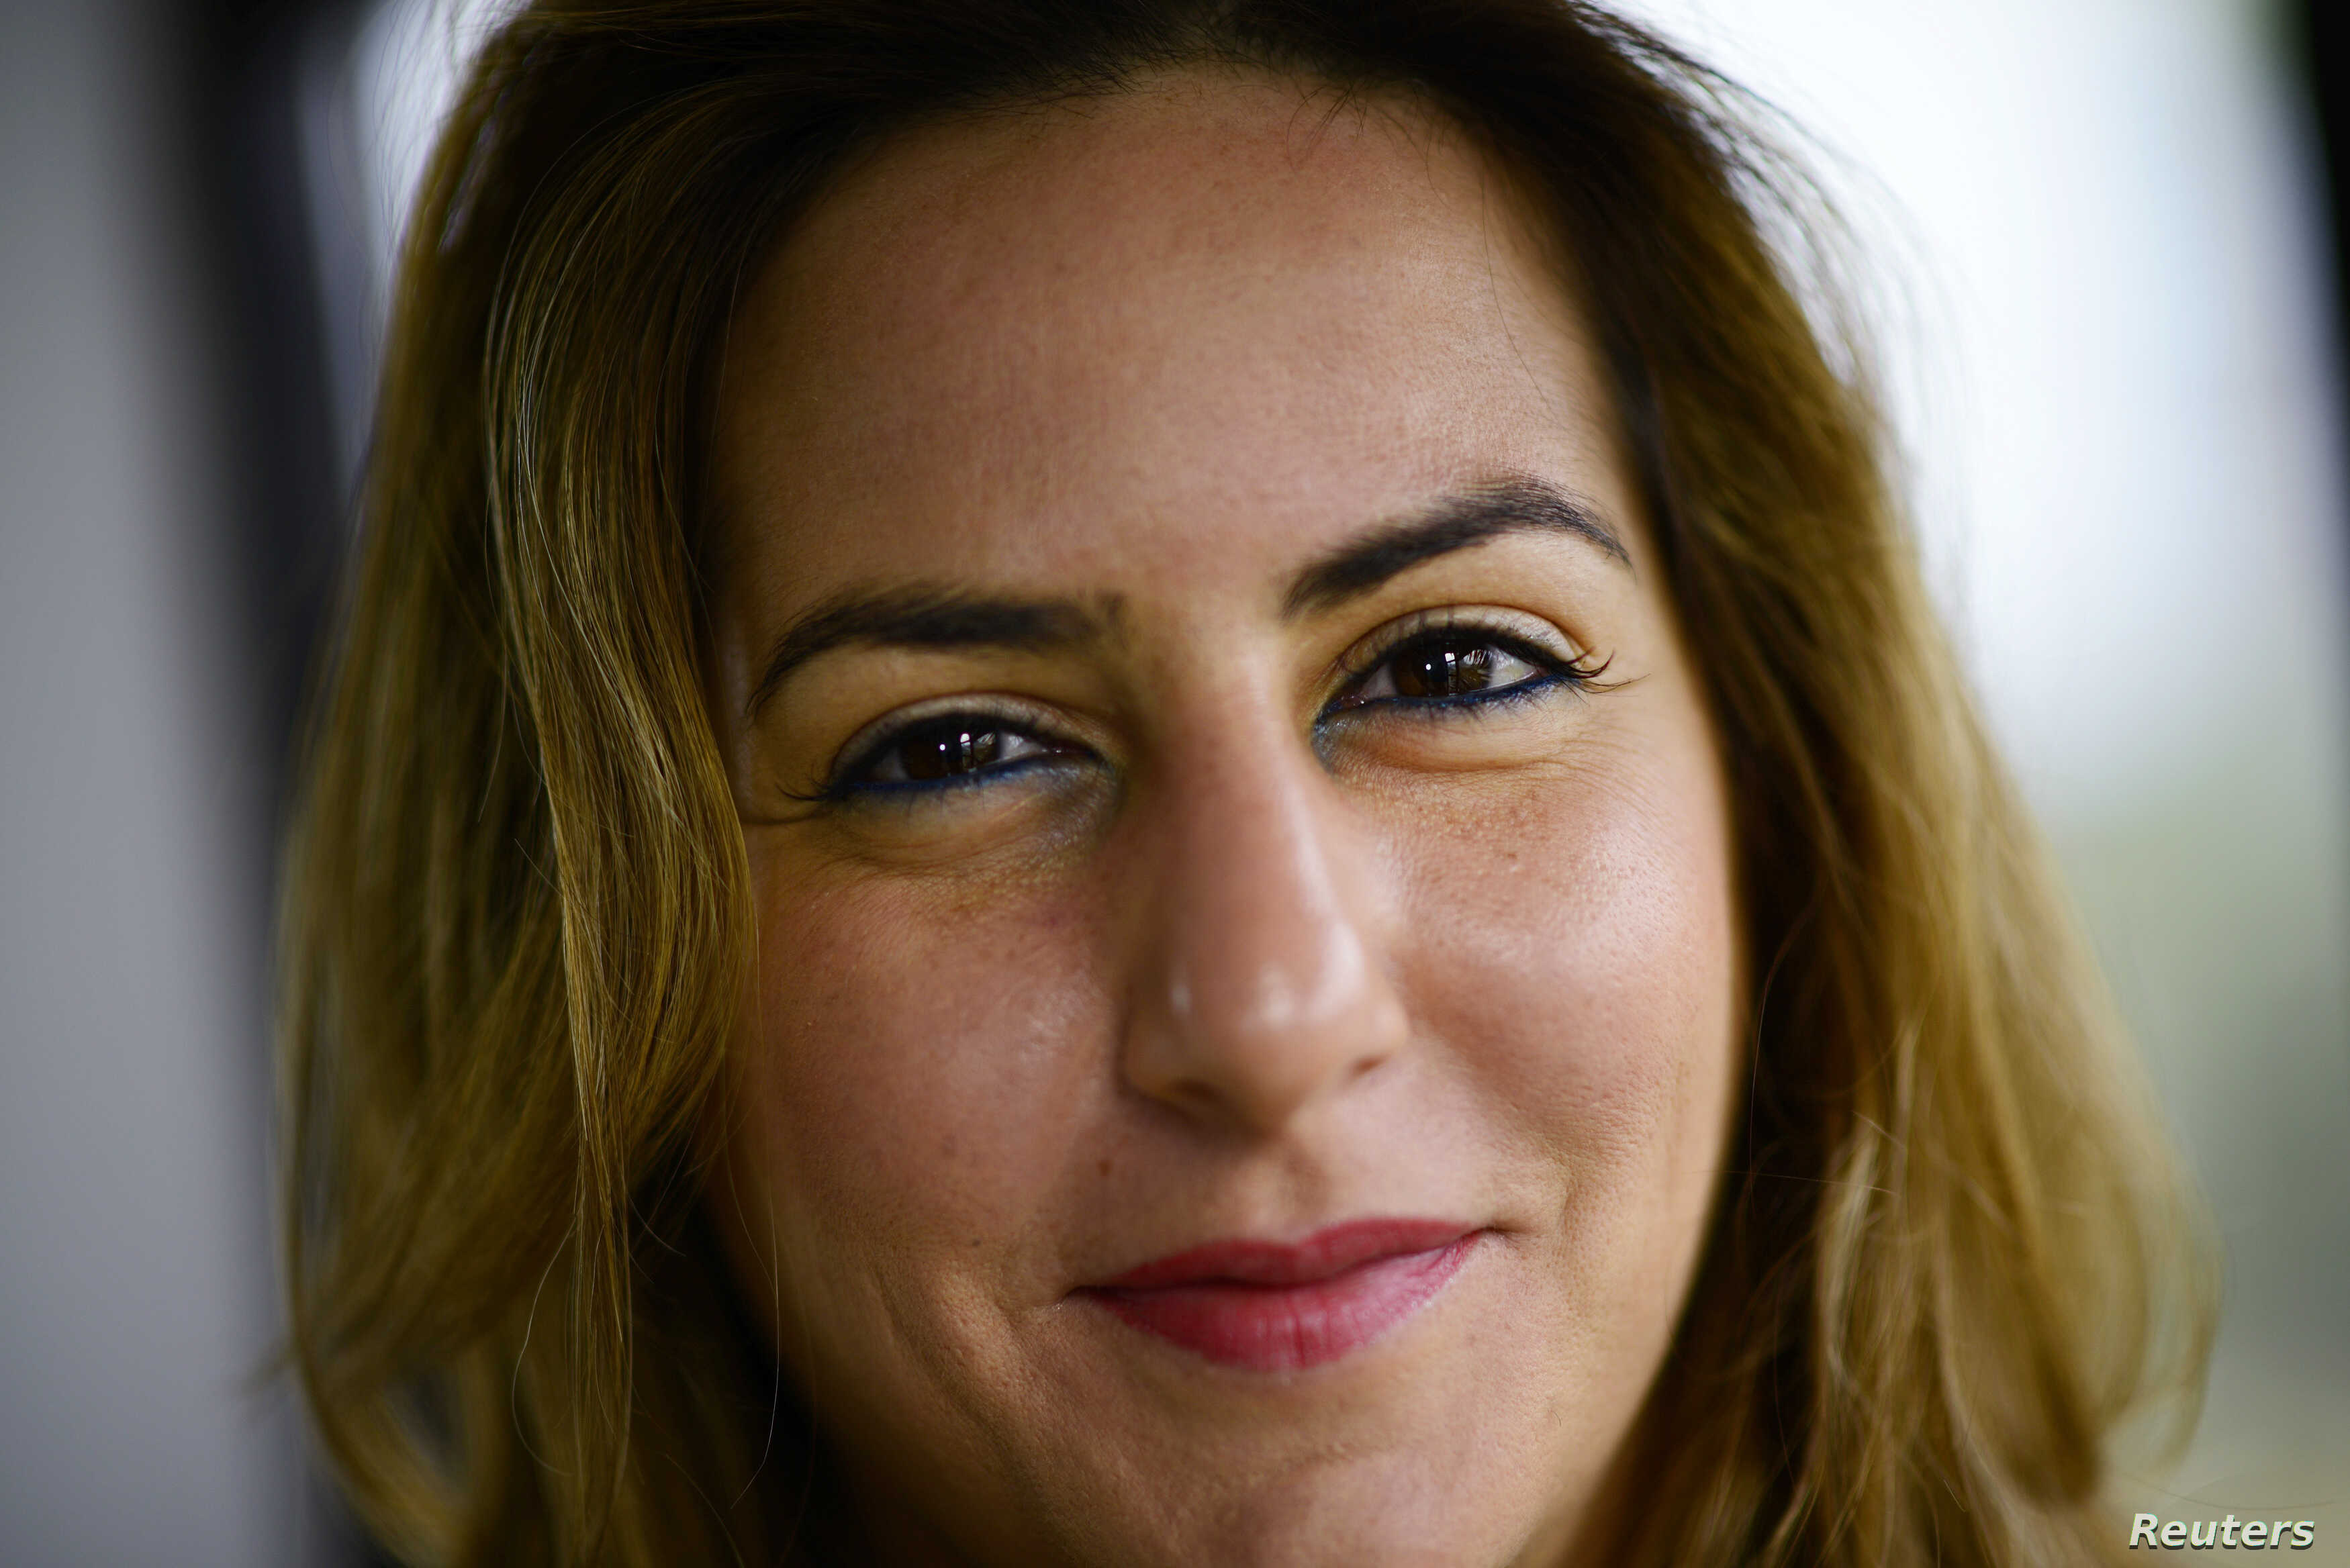 Karma Khayat of Lebanon poses for a photograph during an interview with Reuters in London, March 16, 2015.